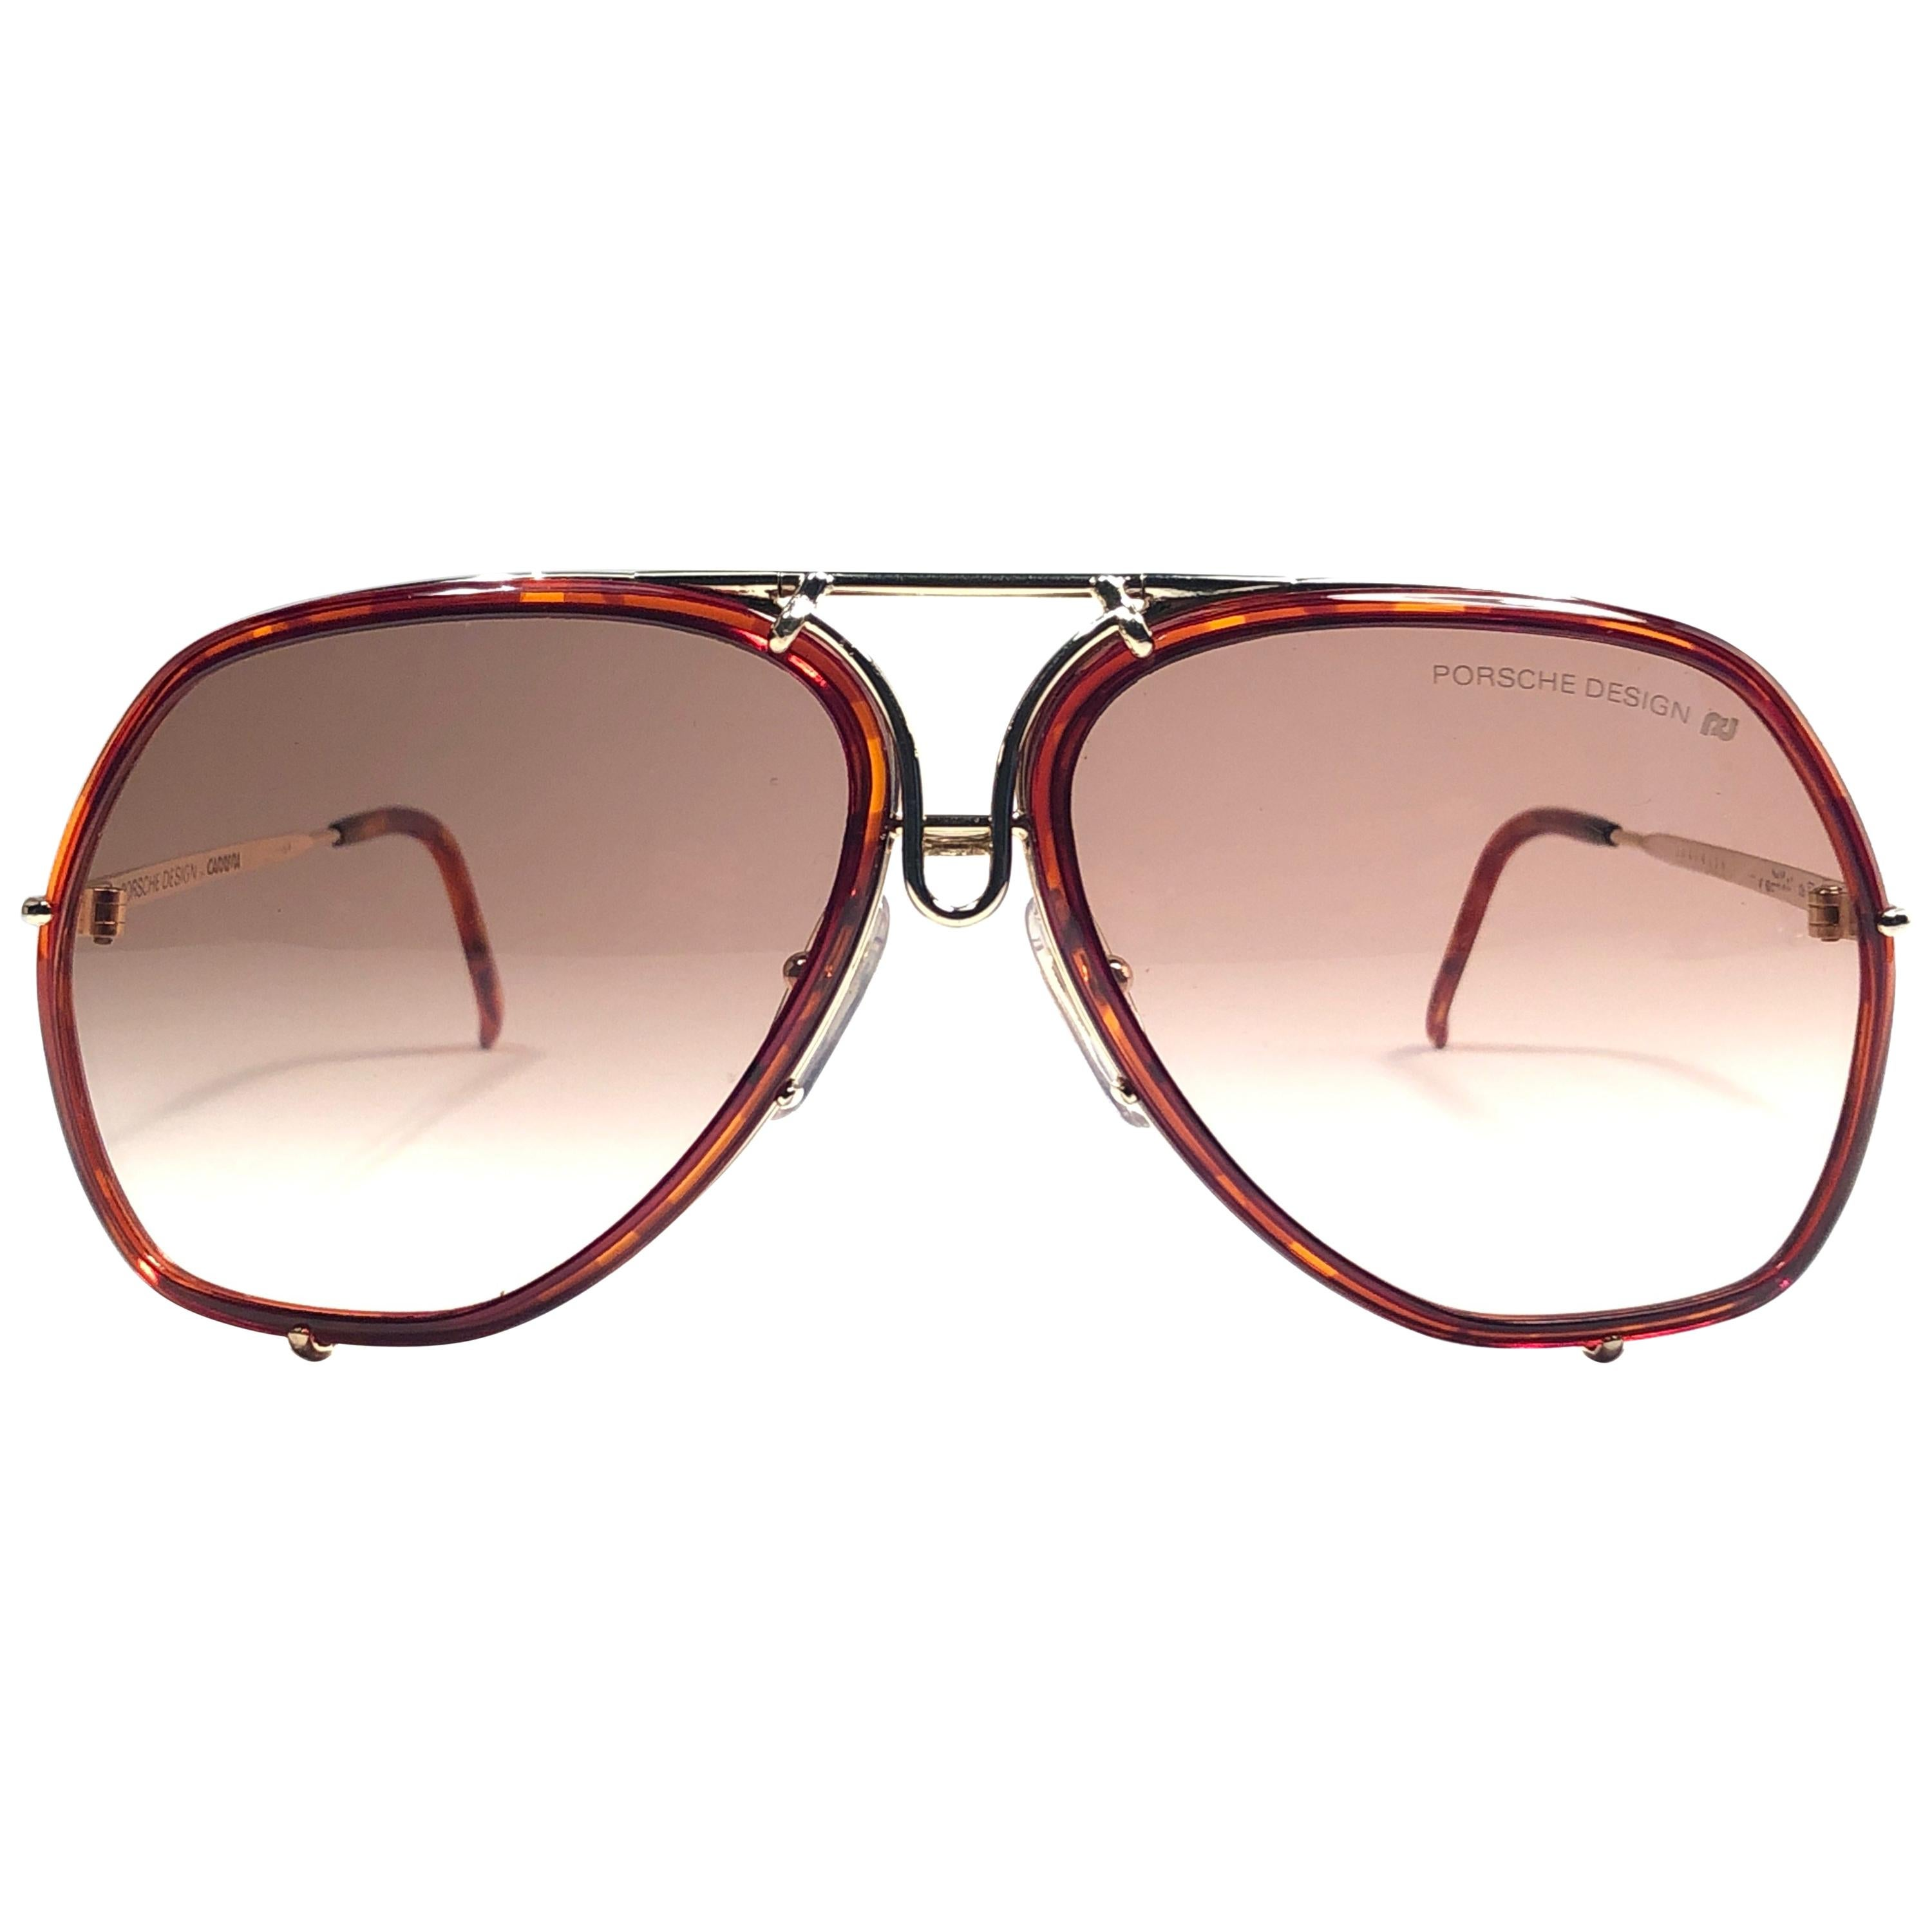 68c9b93983ea2 Vintage Porsche Design Fashion - 56 For Sale at 1stdibs